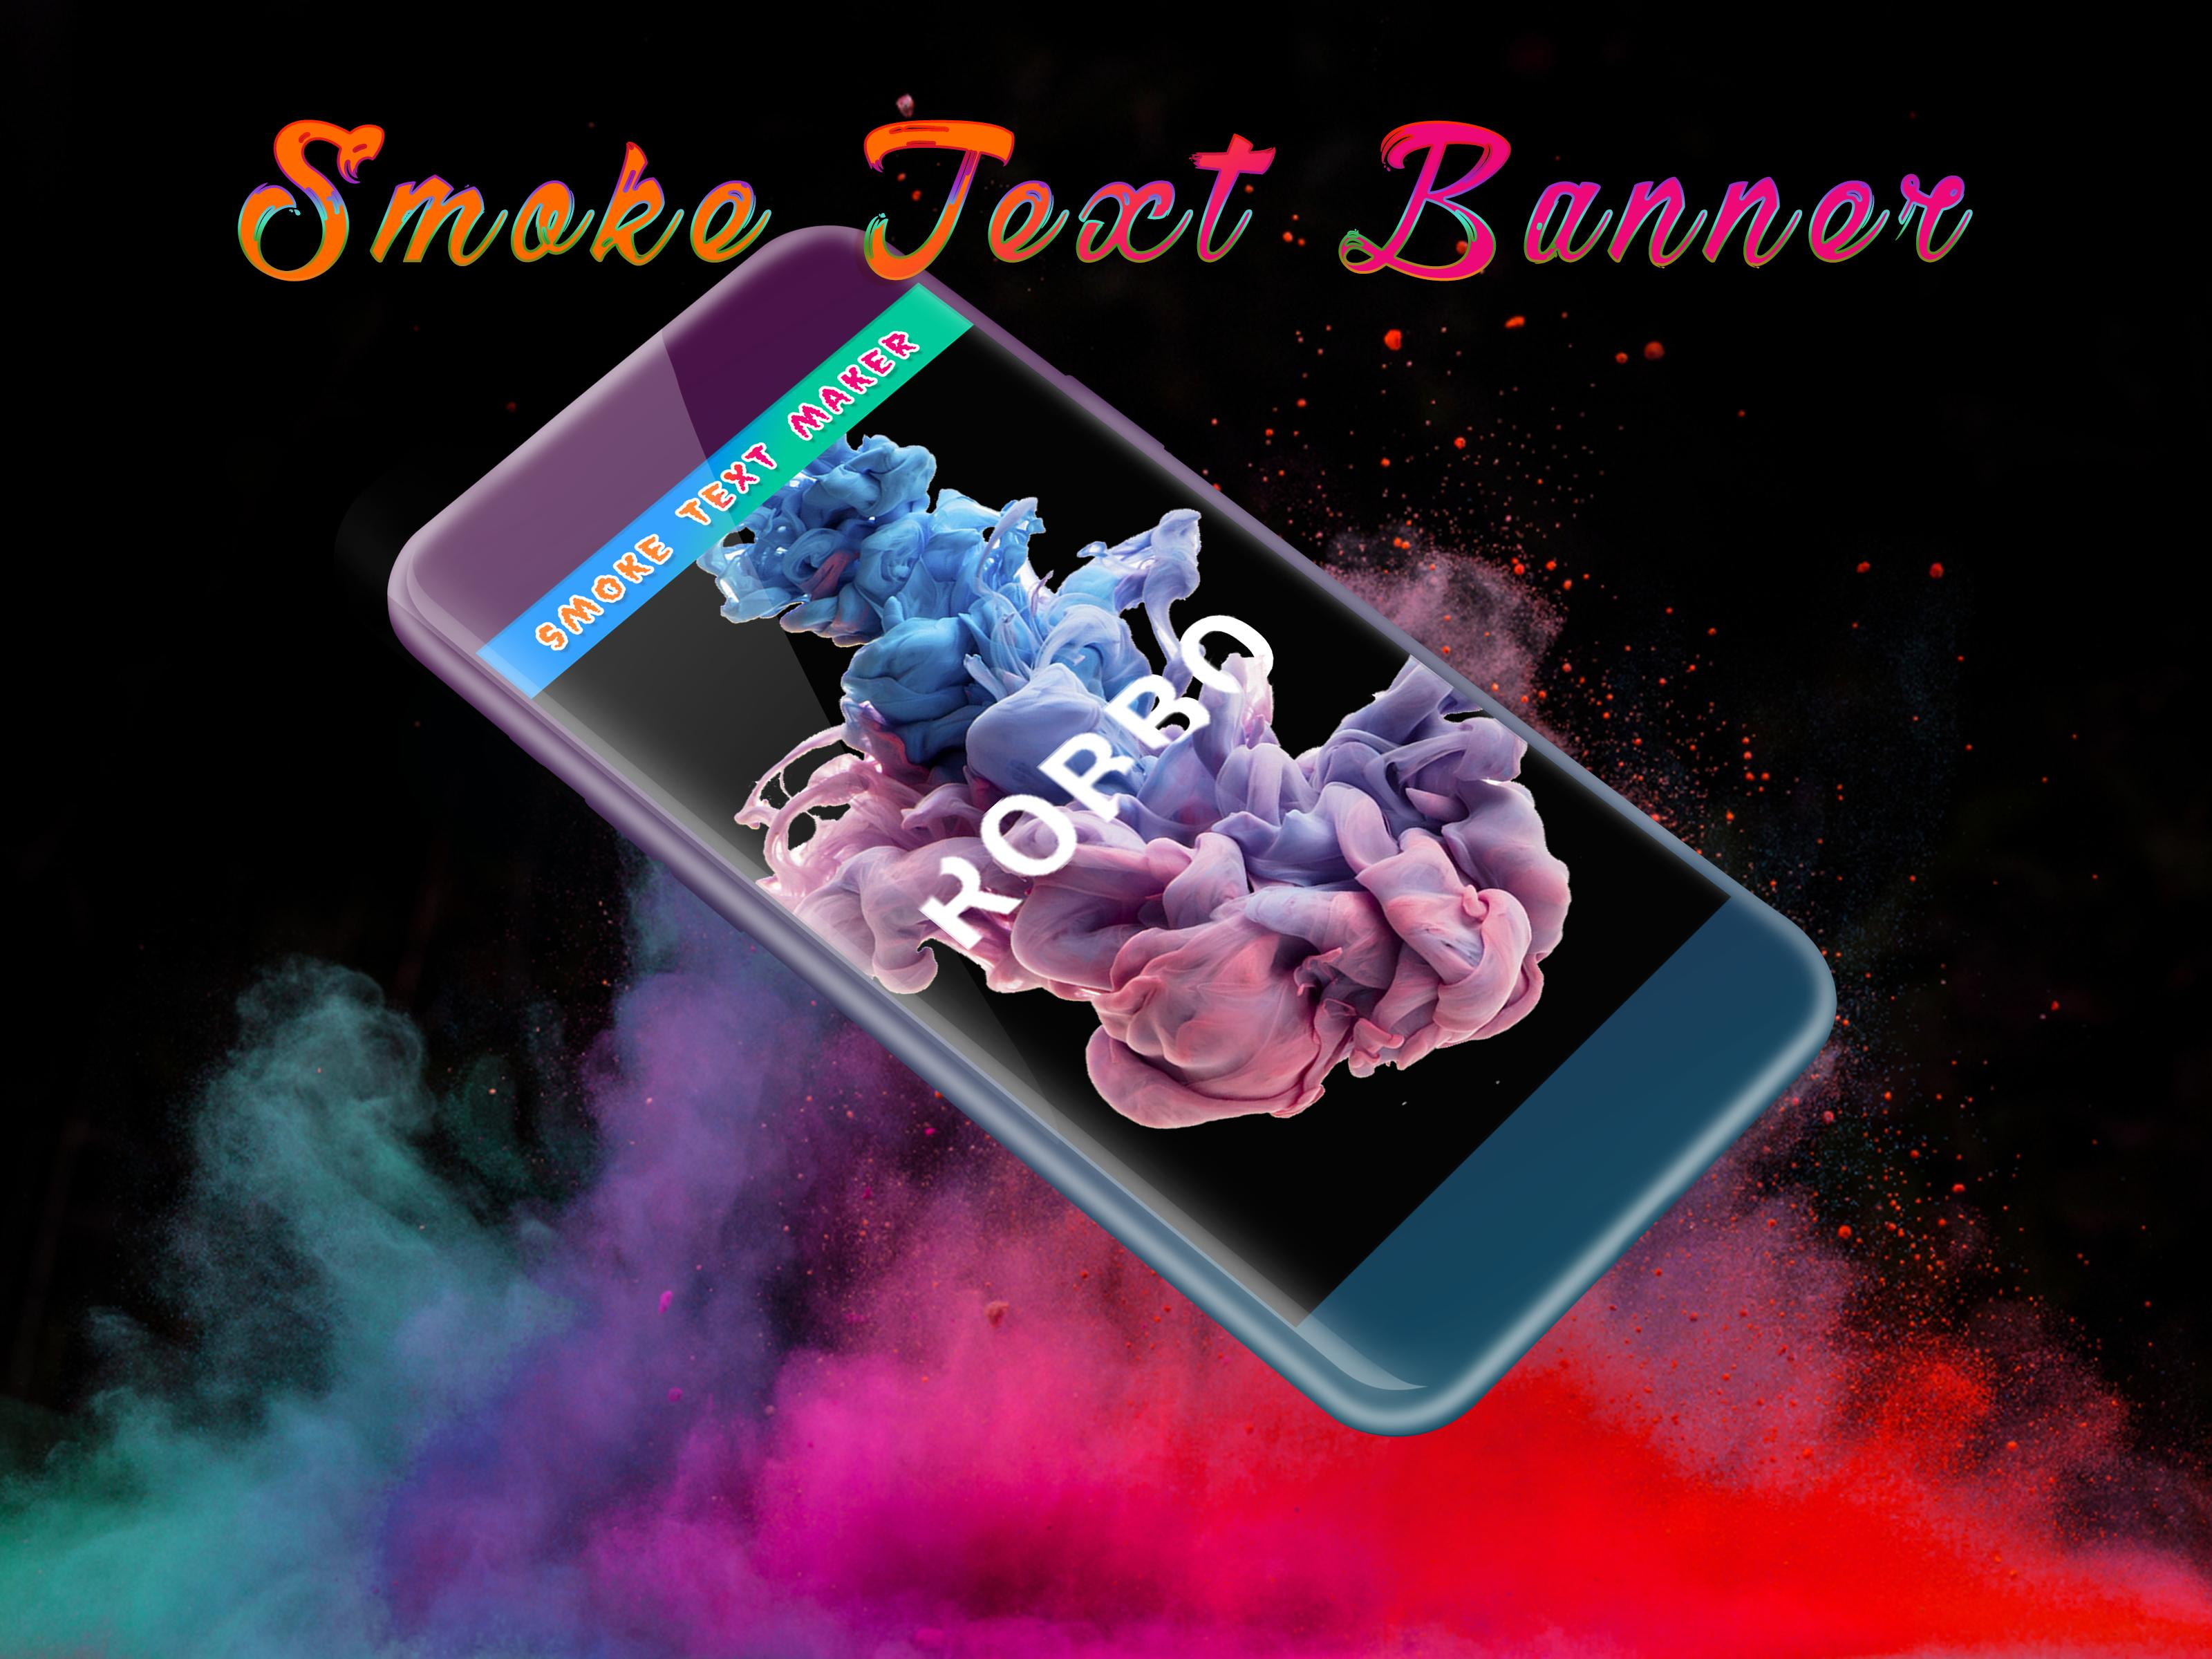 Smoke Effect Art Name: Focus Filter Maker for Android - APK Download